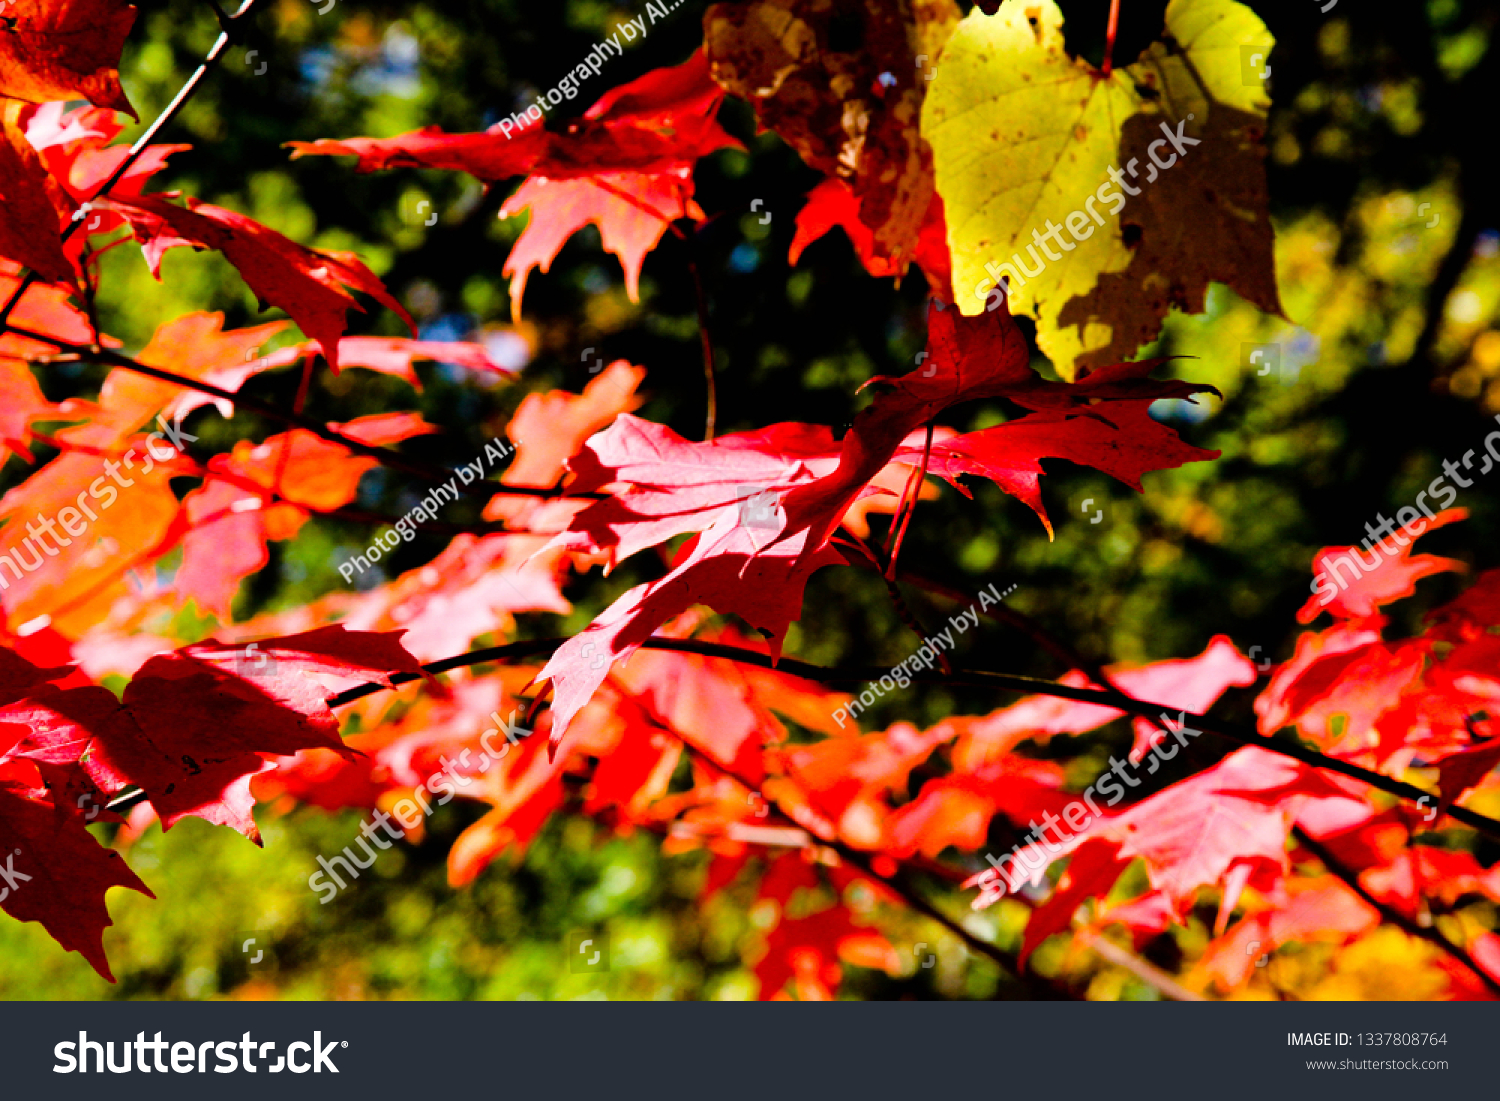 Fall Leaves Backgrounds #1337808764